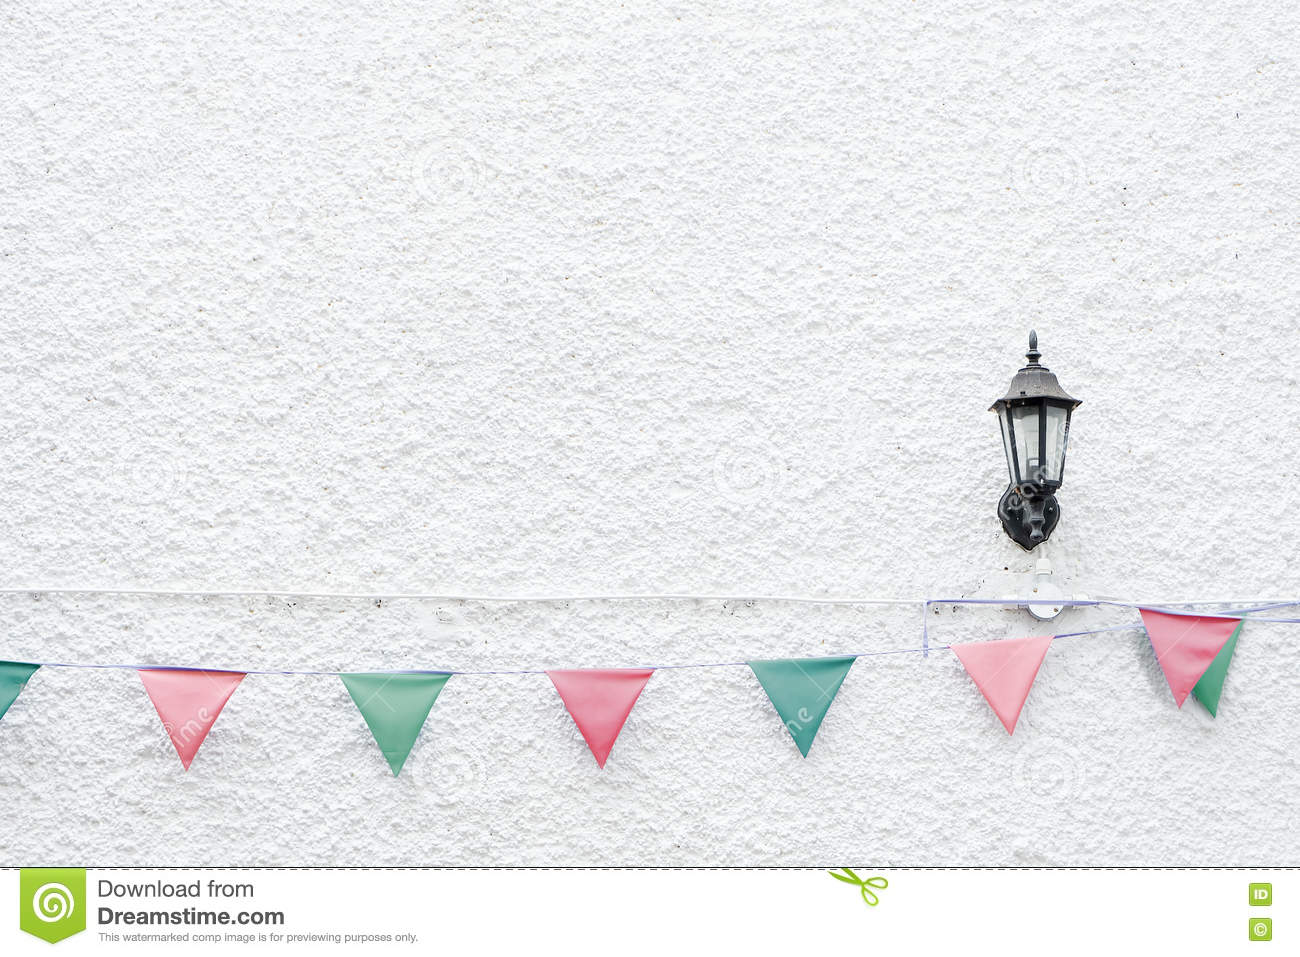 Merry Christmas Party flags bunting hanging on white wall background on x`mas eve holiday event. Minimal hipster style design.